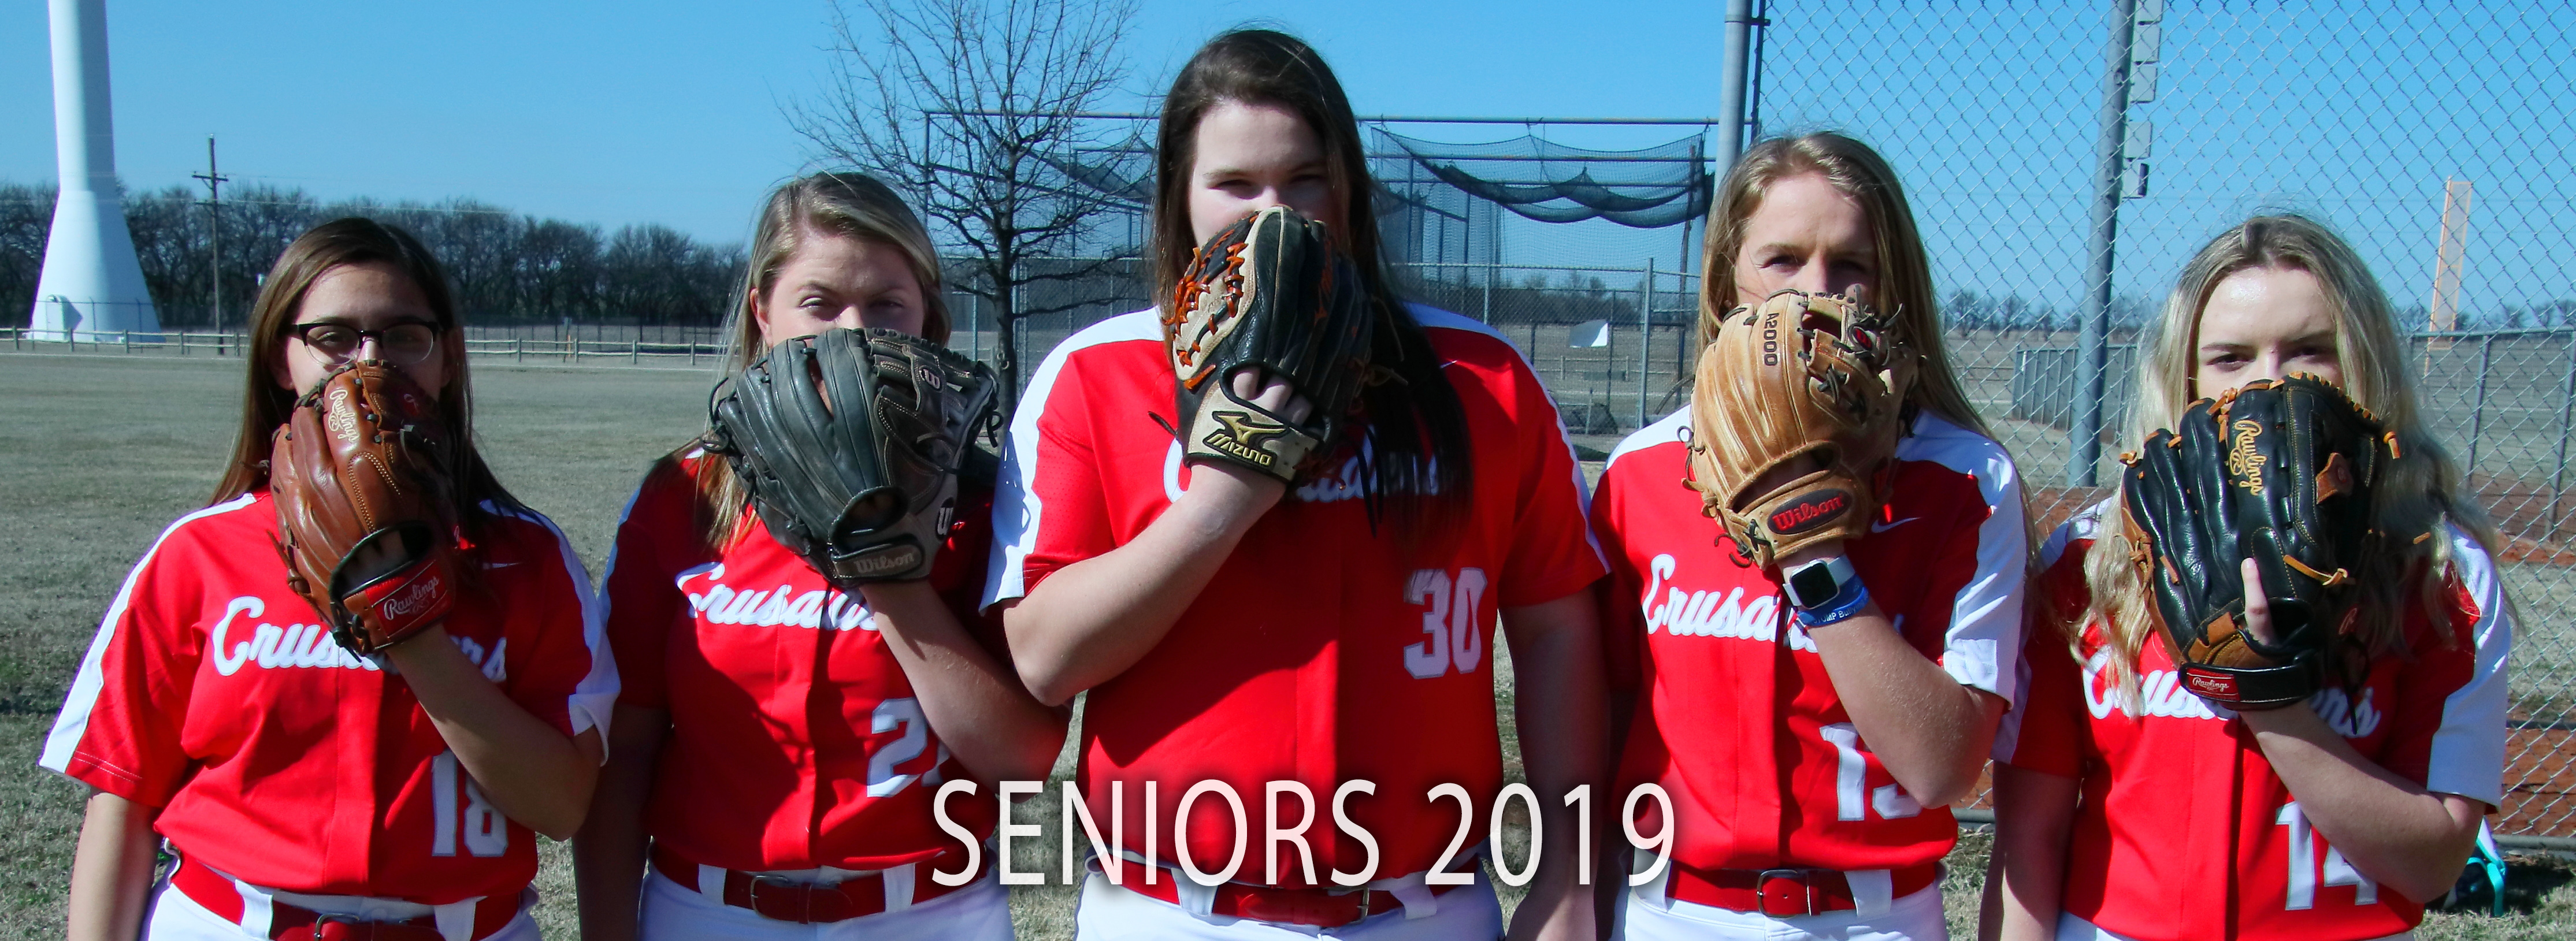 Lady Crusader Softball Seniors 2019